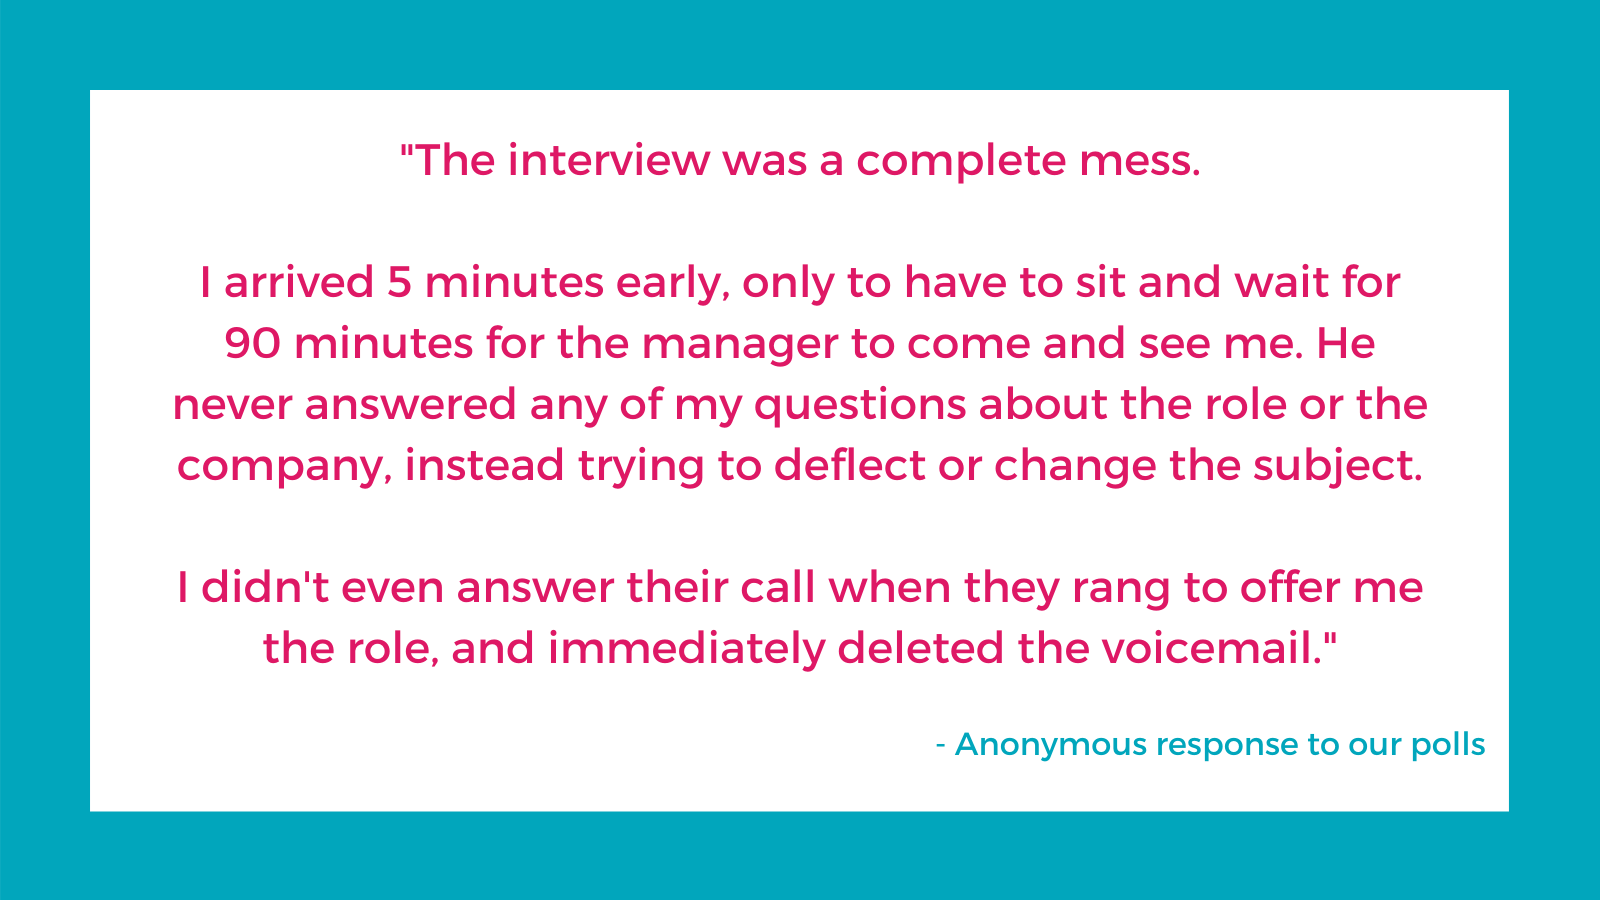 Quote from a respondent about a poor interview experience